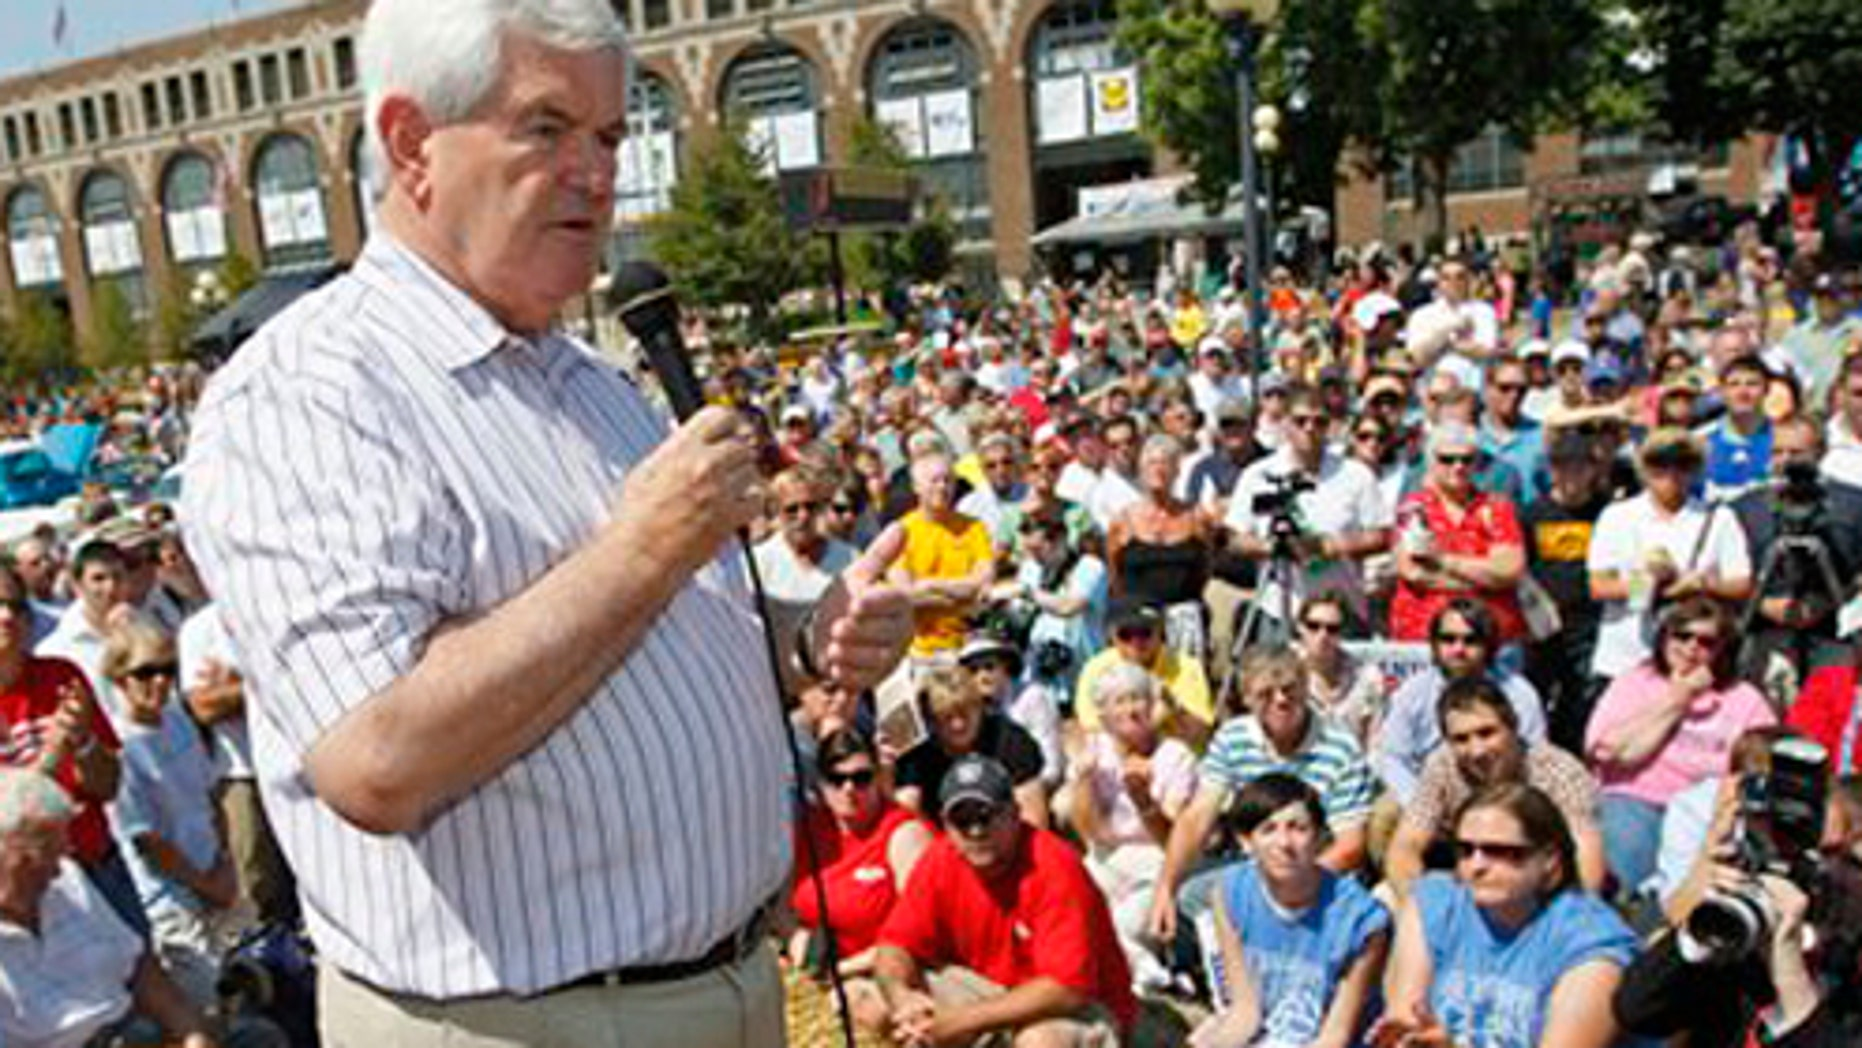 FILE - In this Aug. 12, 2011 file photo, Republican presidential candidate, former House Speaker Newt Gingrich campaigns at the Iowa State Fair in Des Moines, Iowa. Iowa's presidential caucuses are any Republican candidate's to win. Just two months before the GOP nomination voting begins, Iowa Republicans aren't surging toward former Massachusetts Gov. Mitt Romney even though he's essentially been running for president since losing here in 2008. And, this time, none of his opponents has emerged as the consensus candidate of conservatives _ and, thus, Romney's chief challenger _ the way Mike Huckabee did four years ago.  (AP Photo/Charles Dharapak, File)